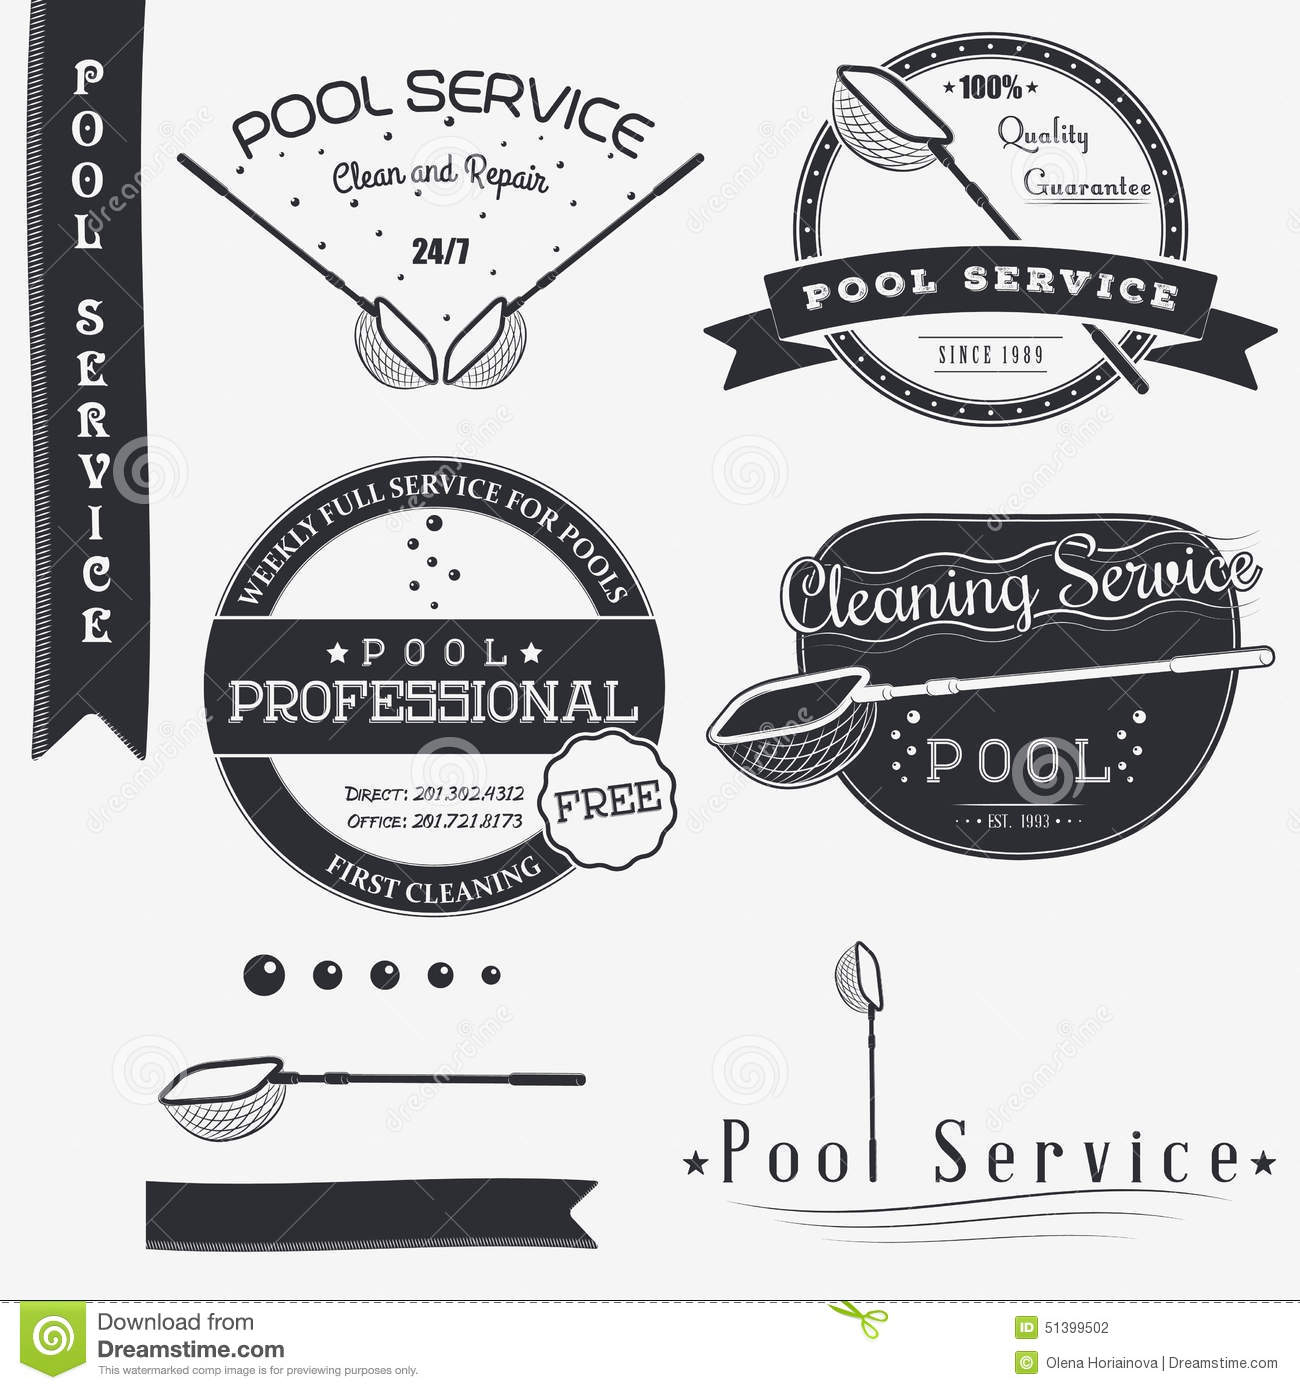 Swimming Pool Cleaning Symbols : Pool service clean and repair set of typographic cartoon